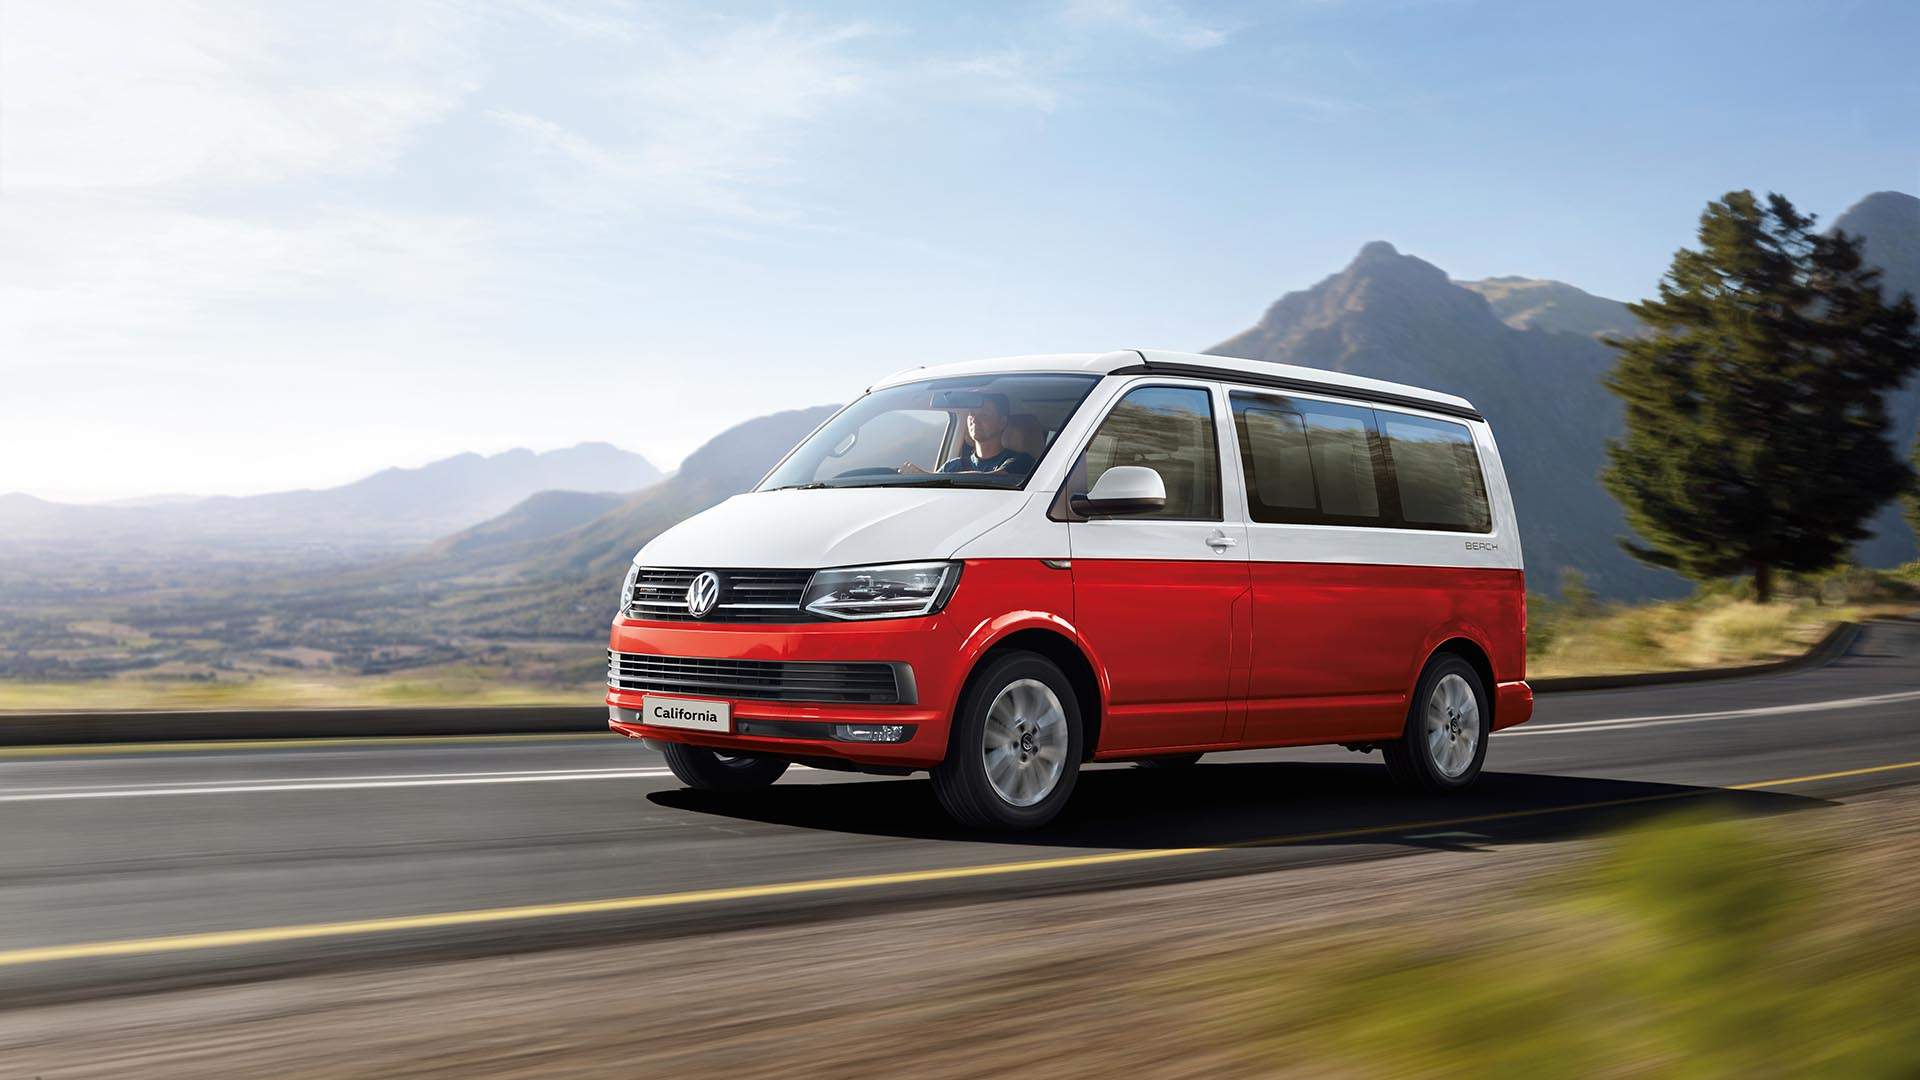 Volkswagen California prices and specs